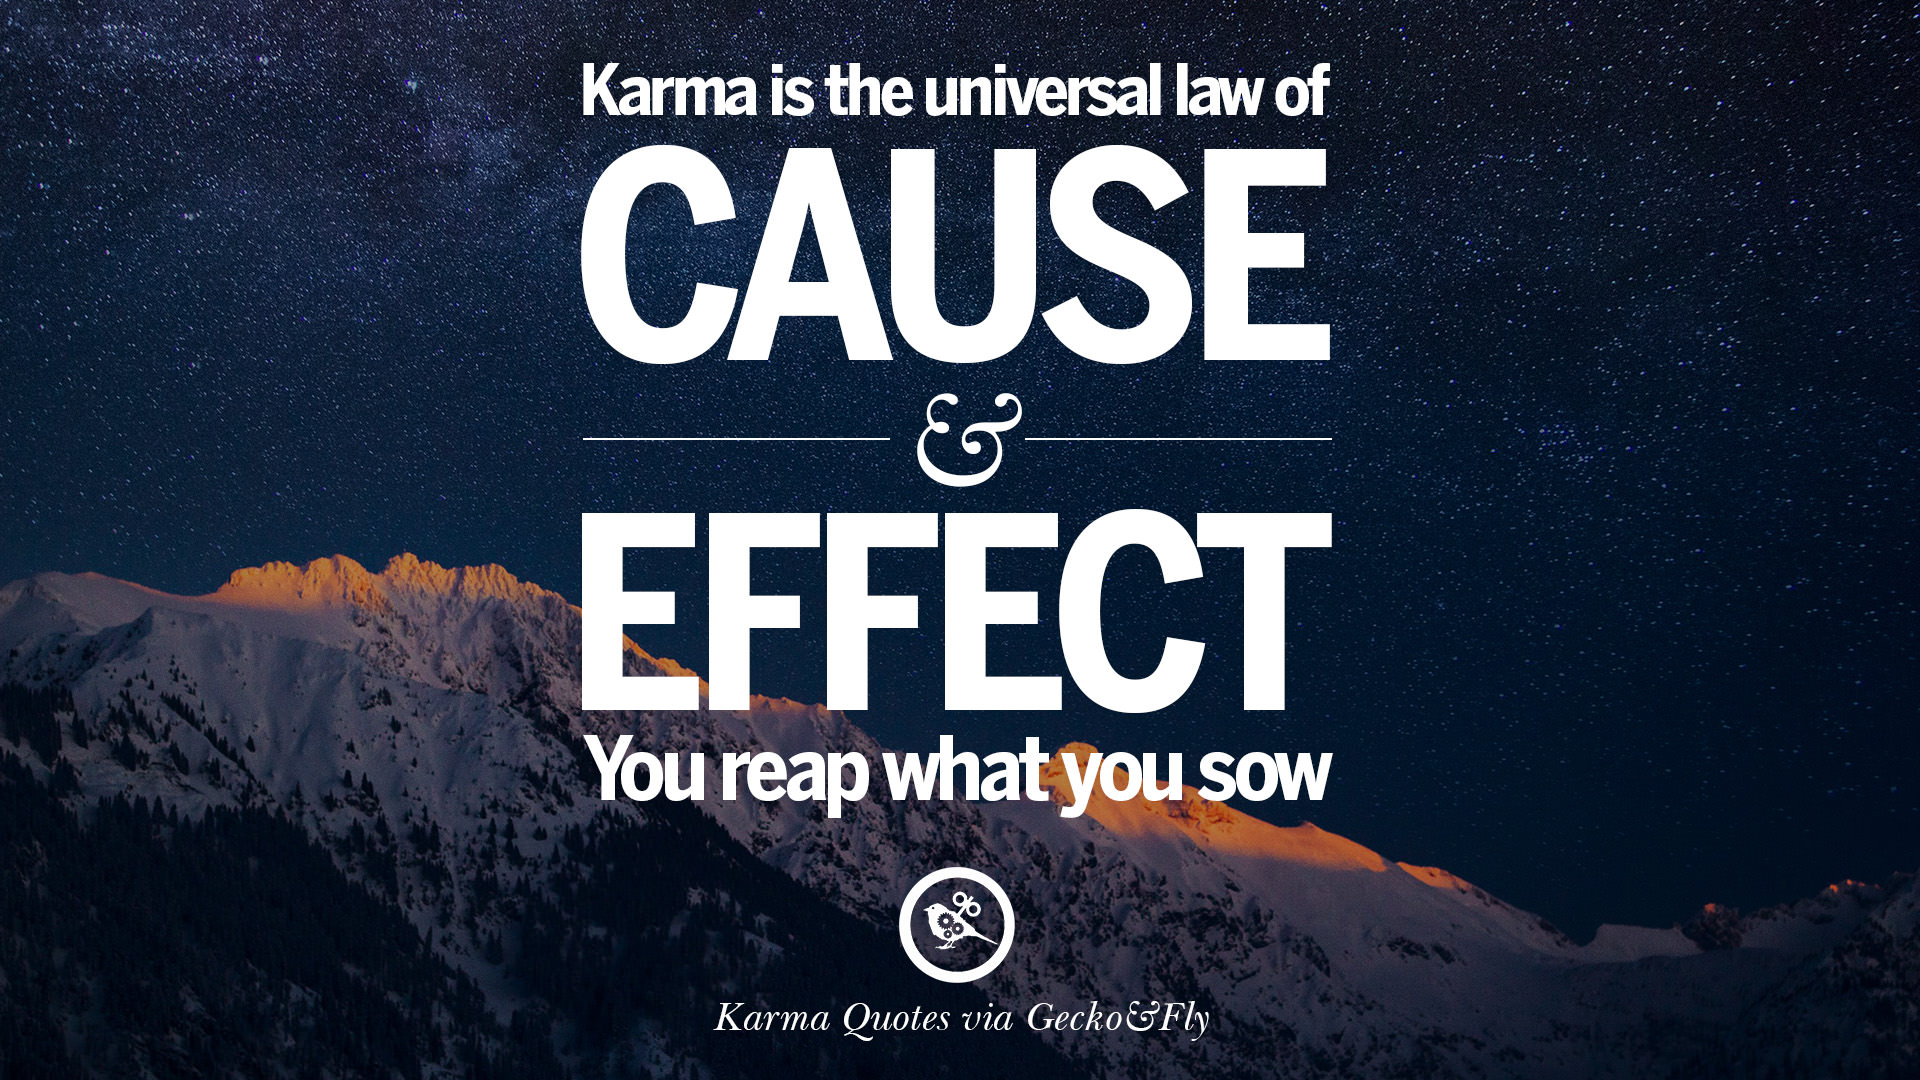 Karma Is The Universal Law Of Cause And Effect. You Reap What You Sow.